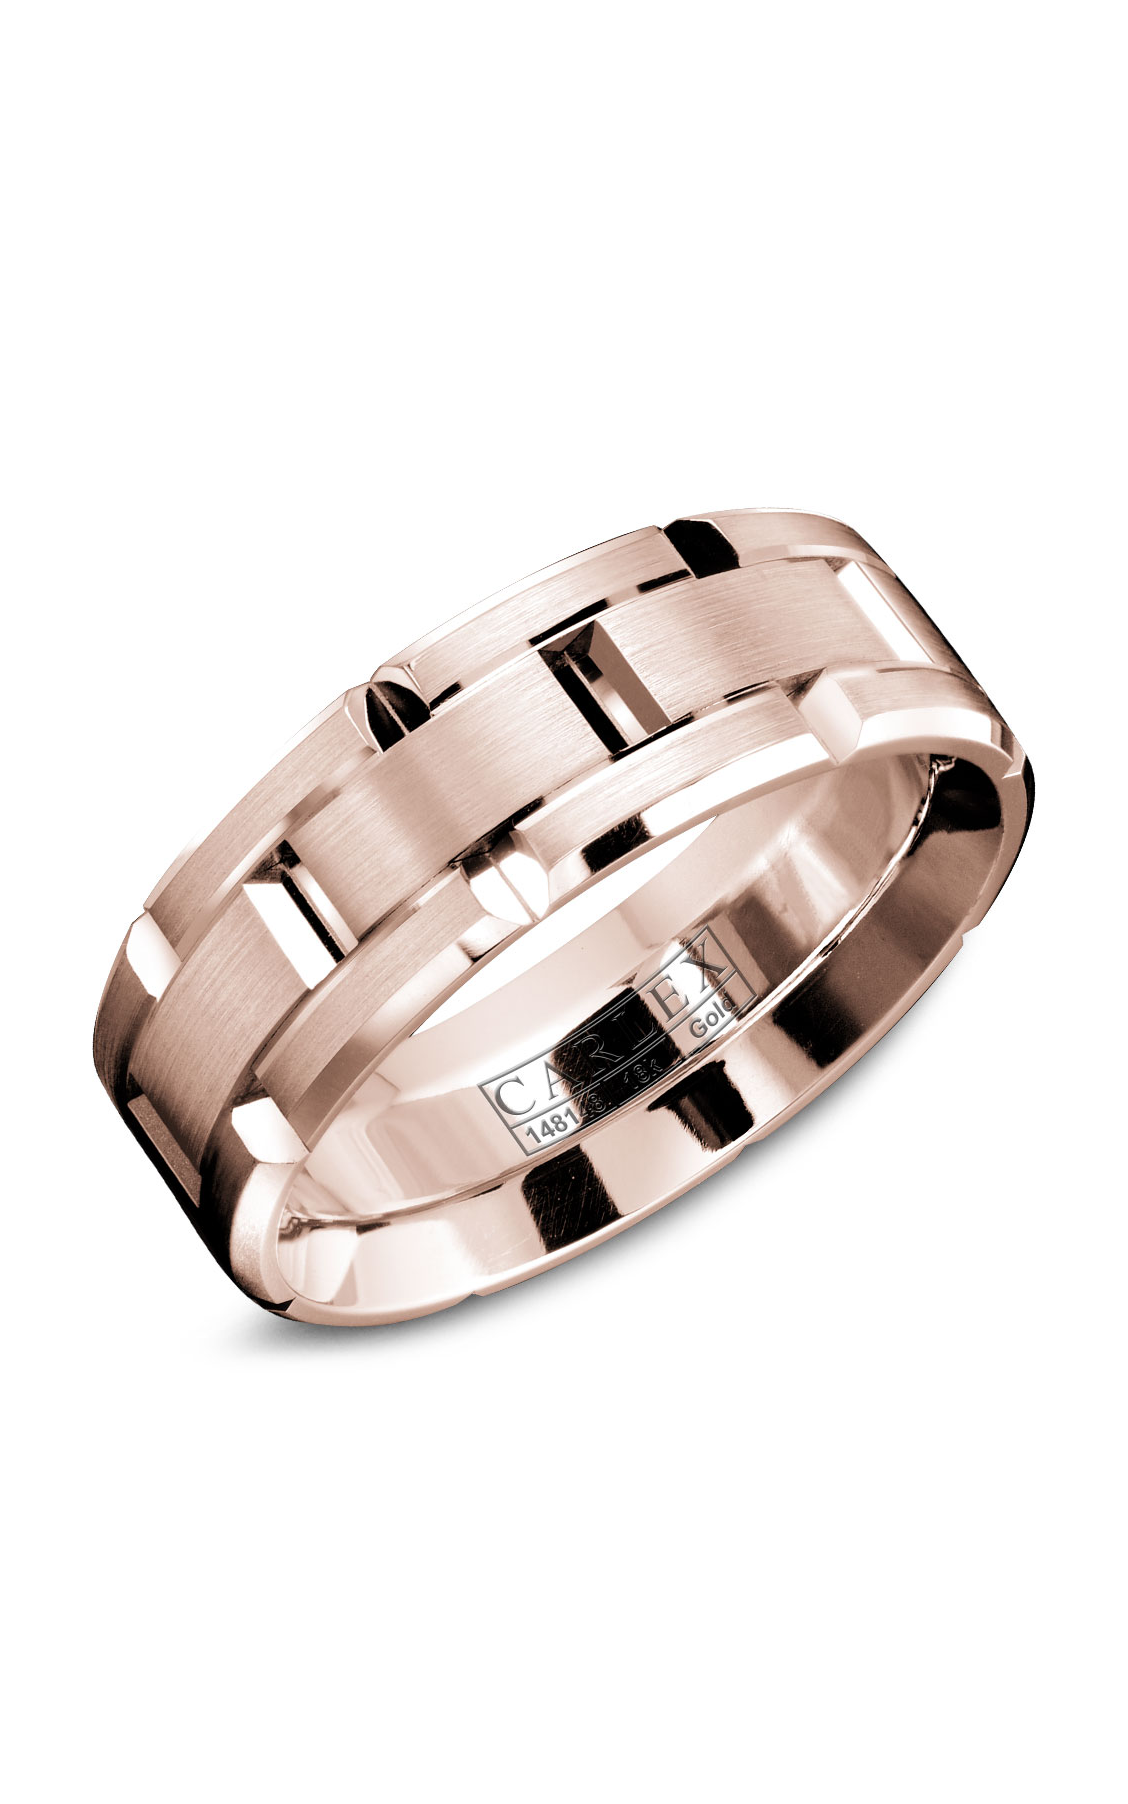 Carlex Sport Men's Wedding Band WB-9316R product image